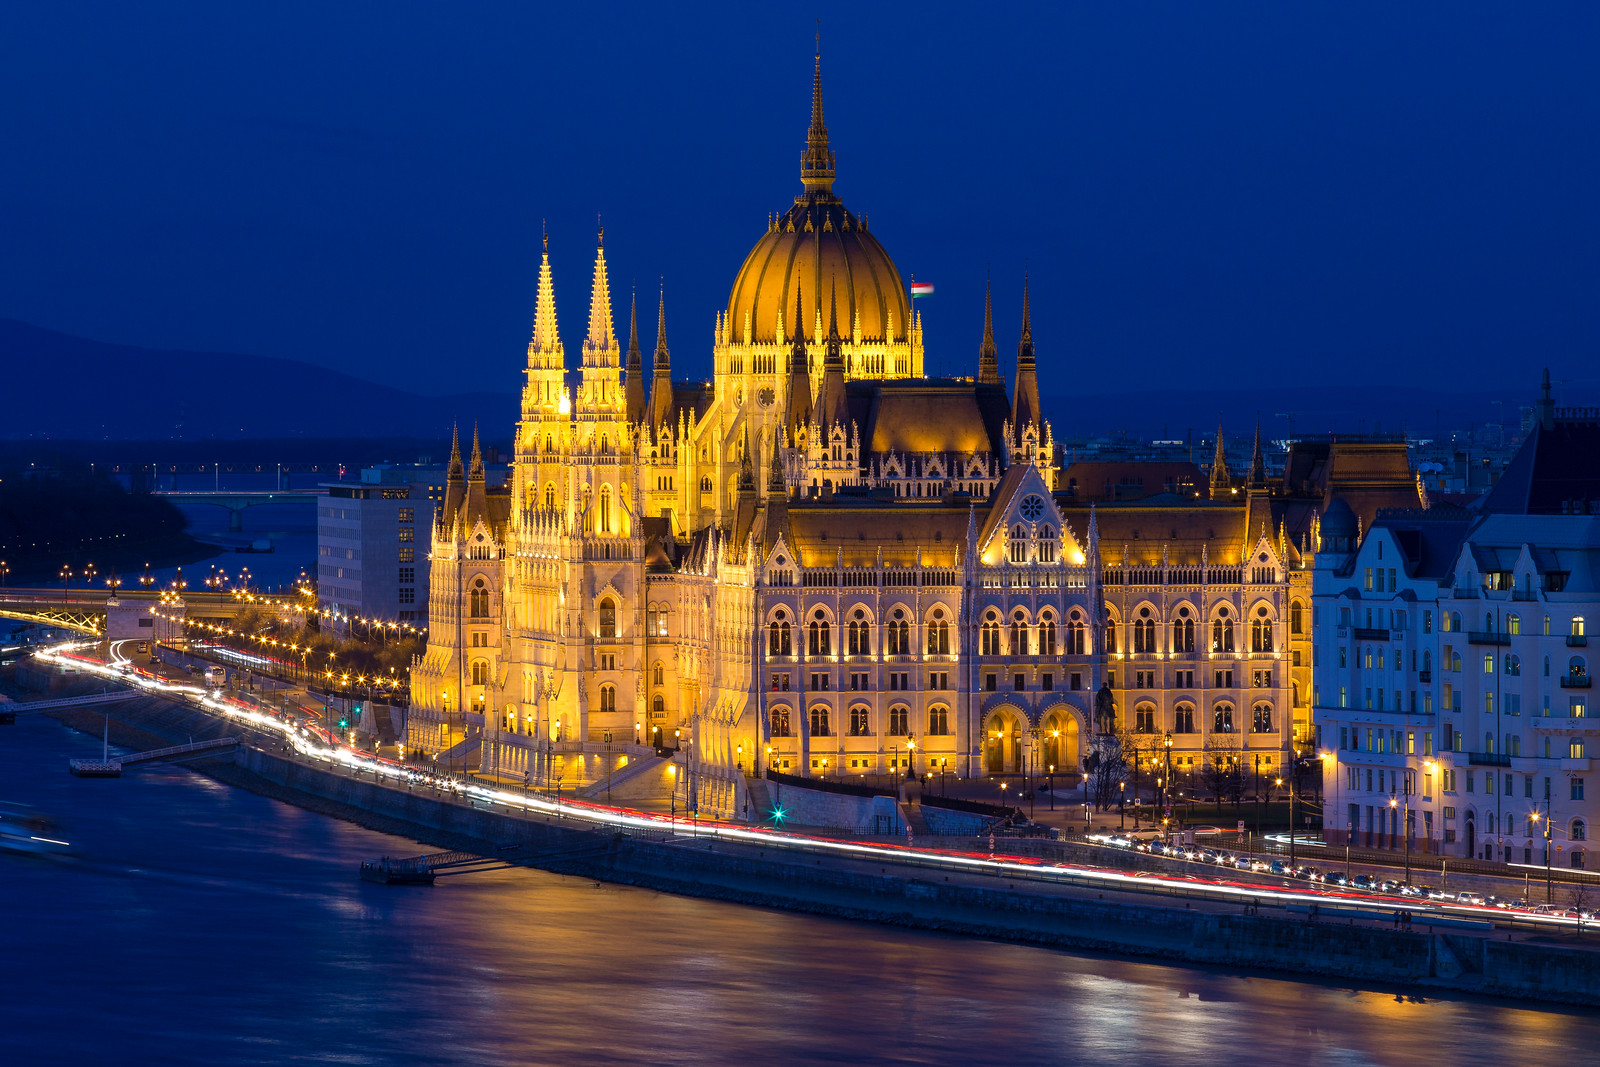 Budapest Parliament at night in the Blue Hour